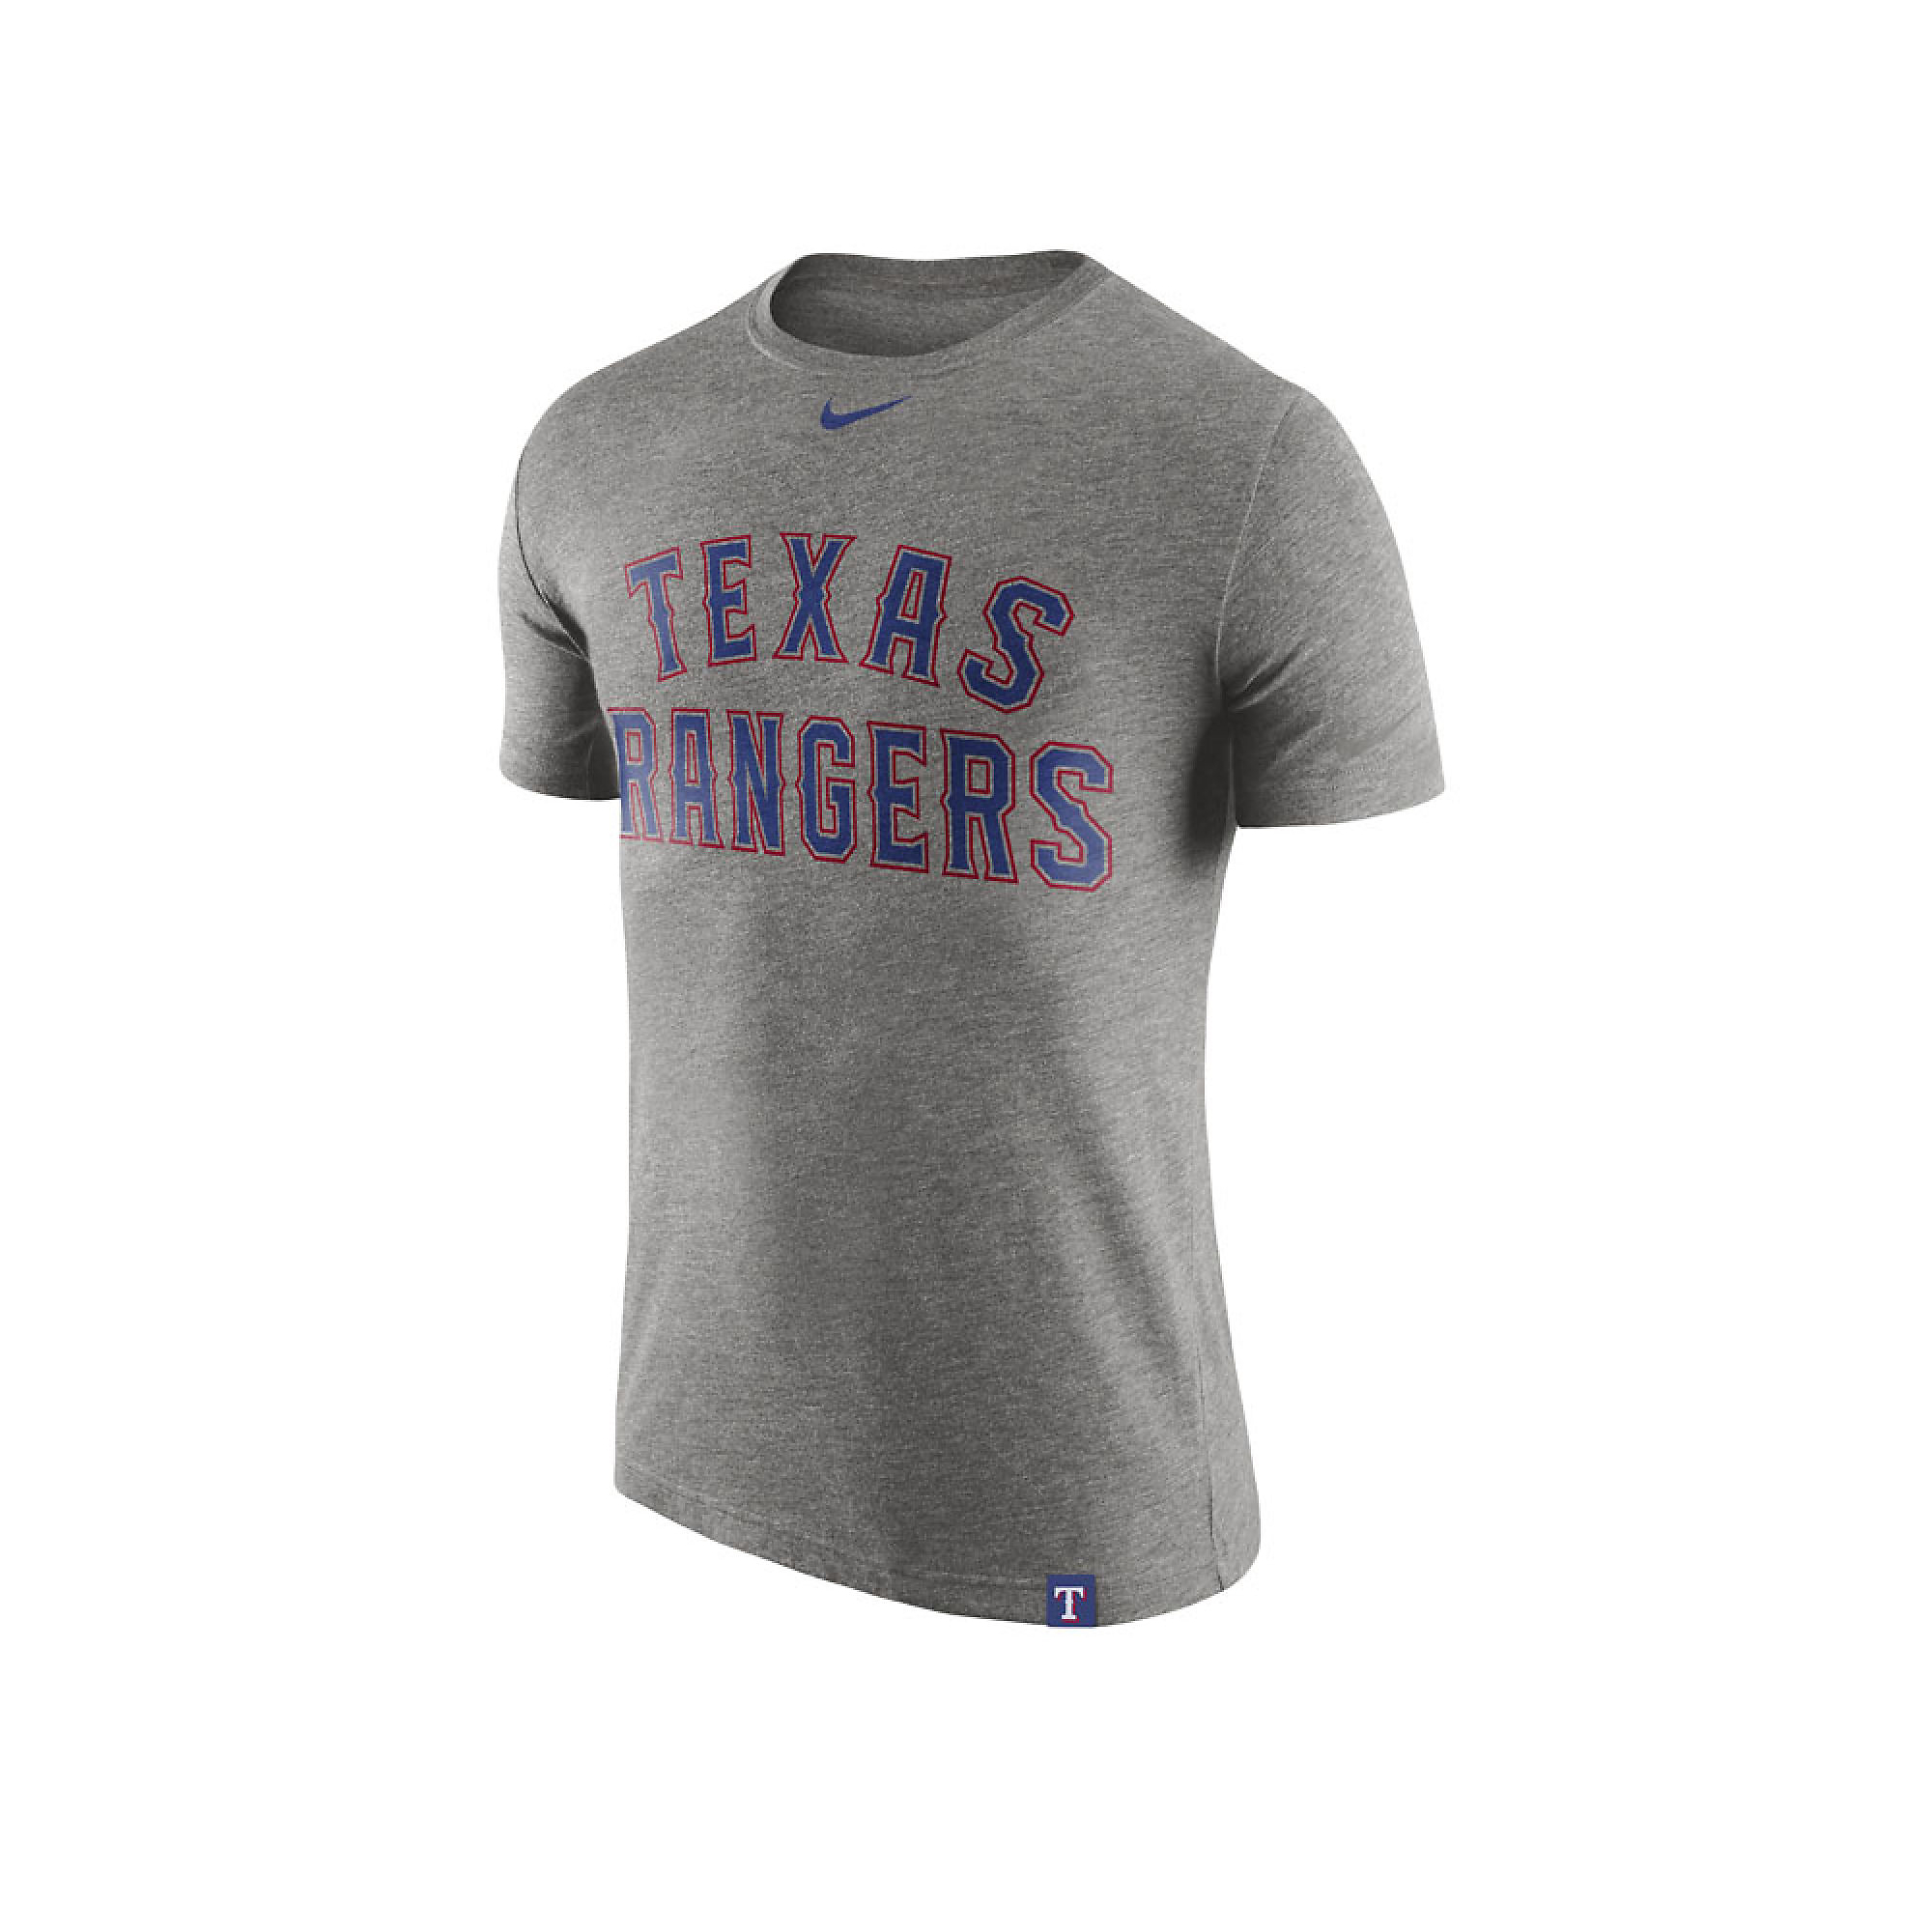 Texas Rangers Nike DNA Tee